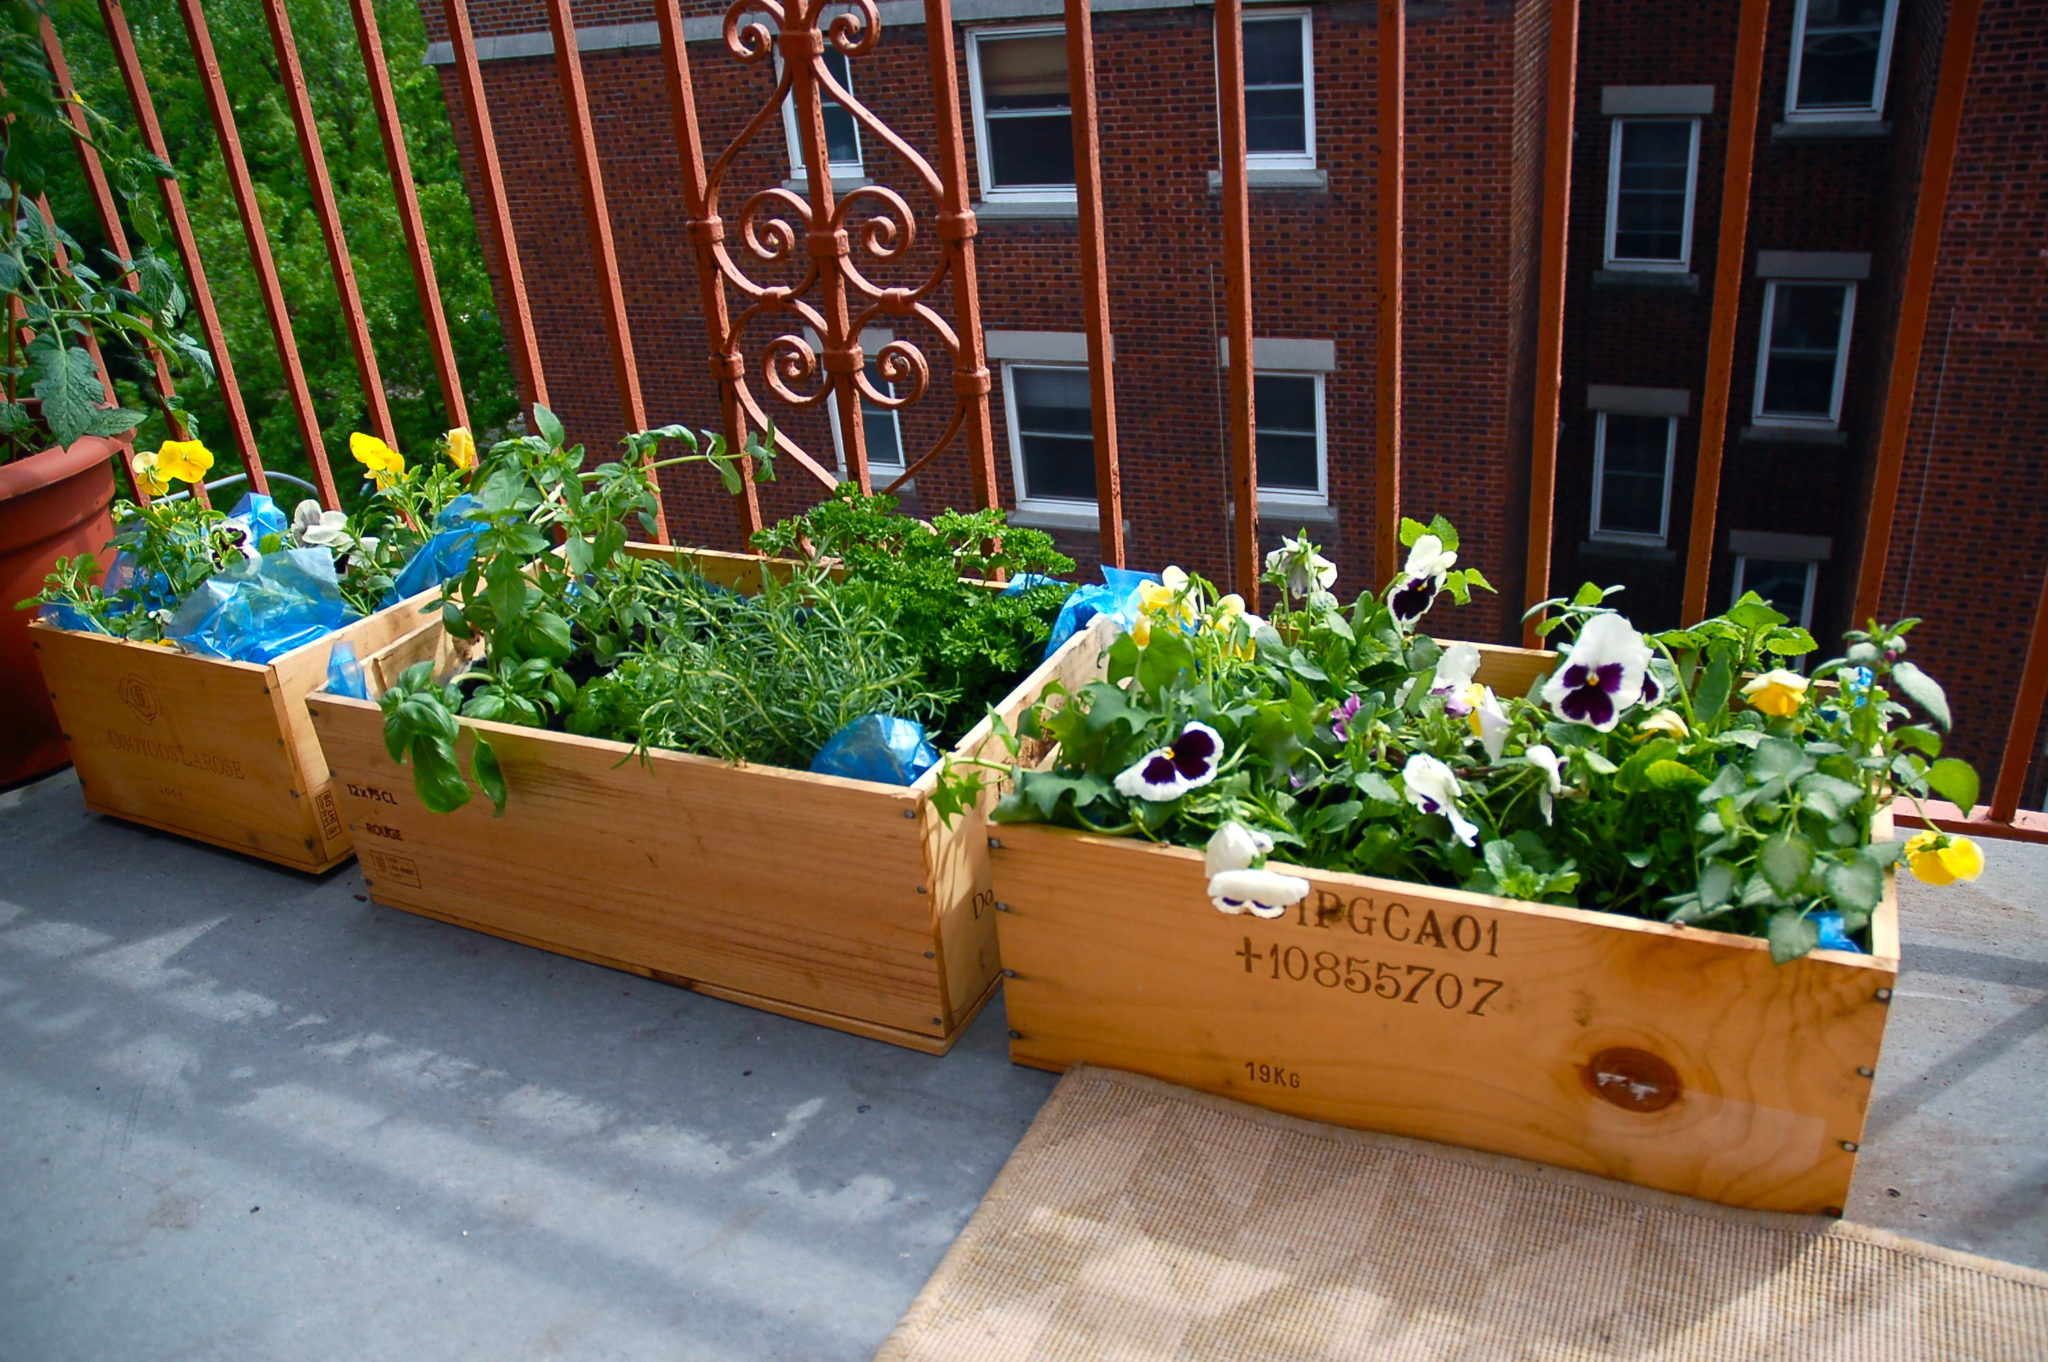 Urban oasis balcony gardens that prove green is always in style - Balcony gardening in small spaces pict ...